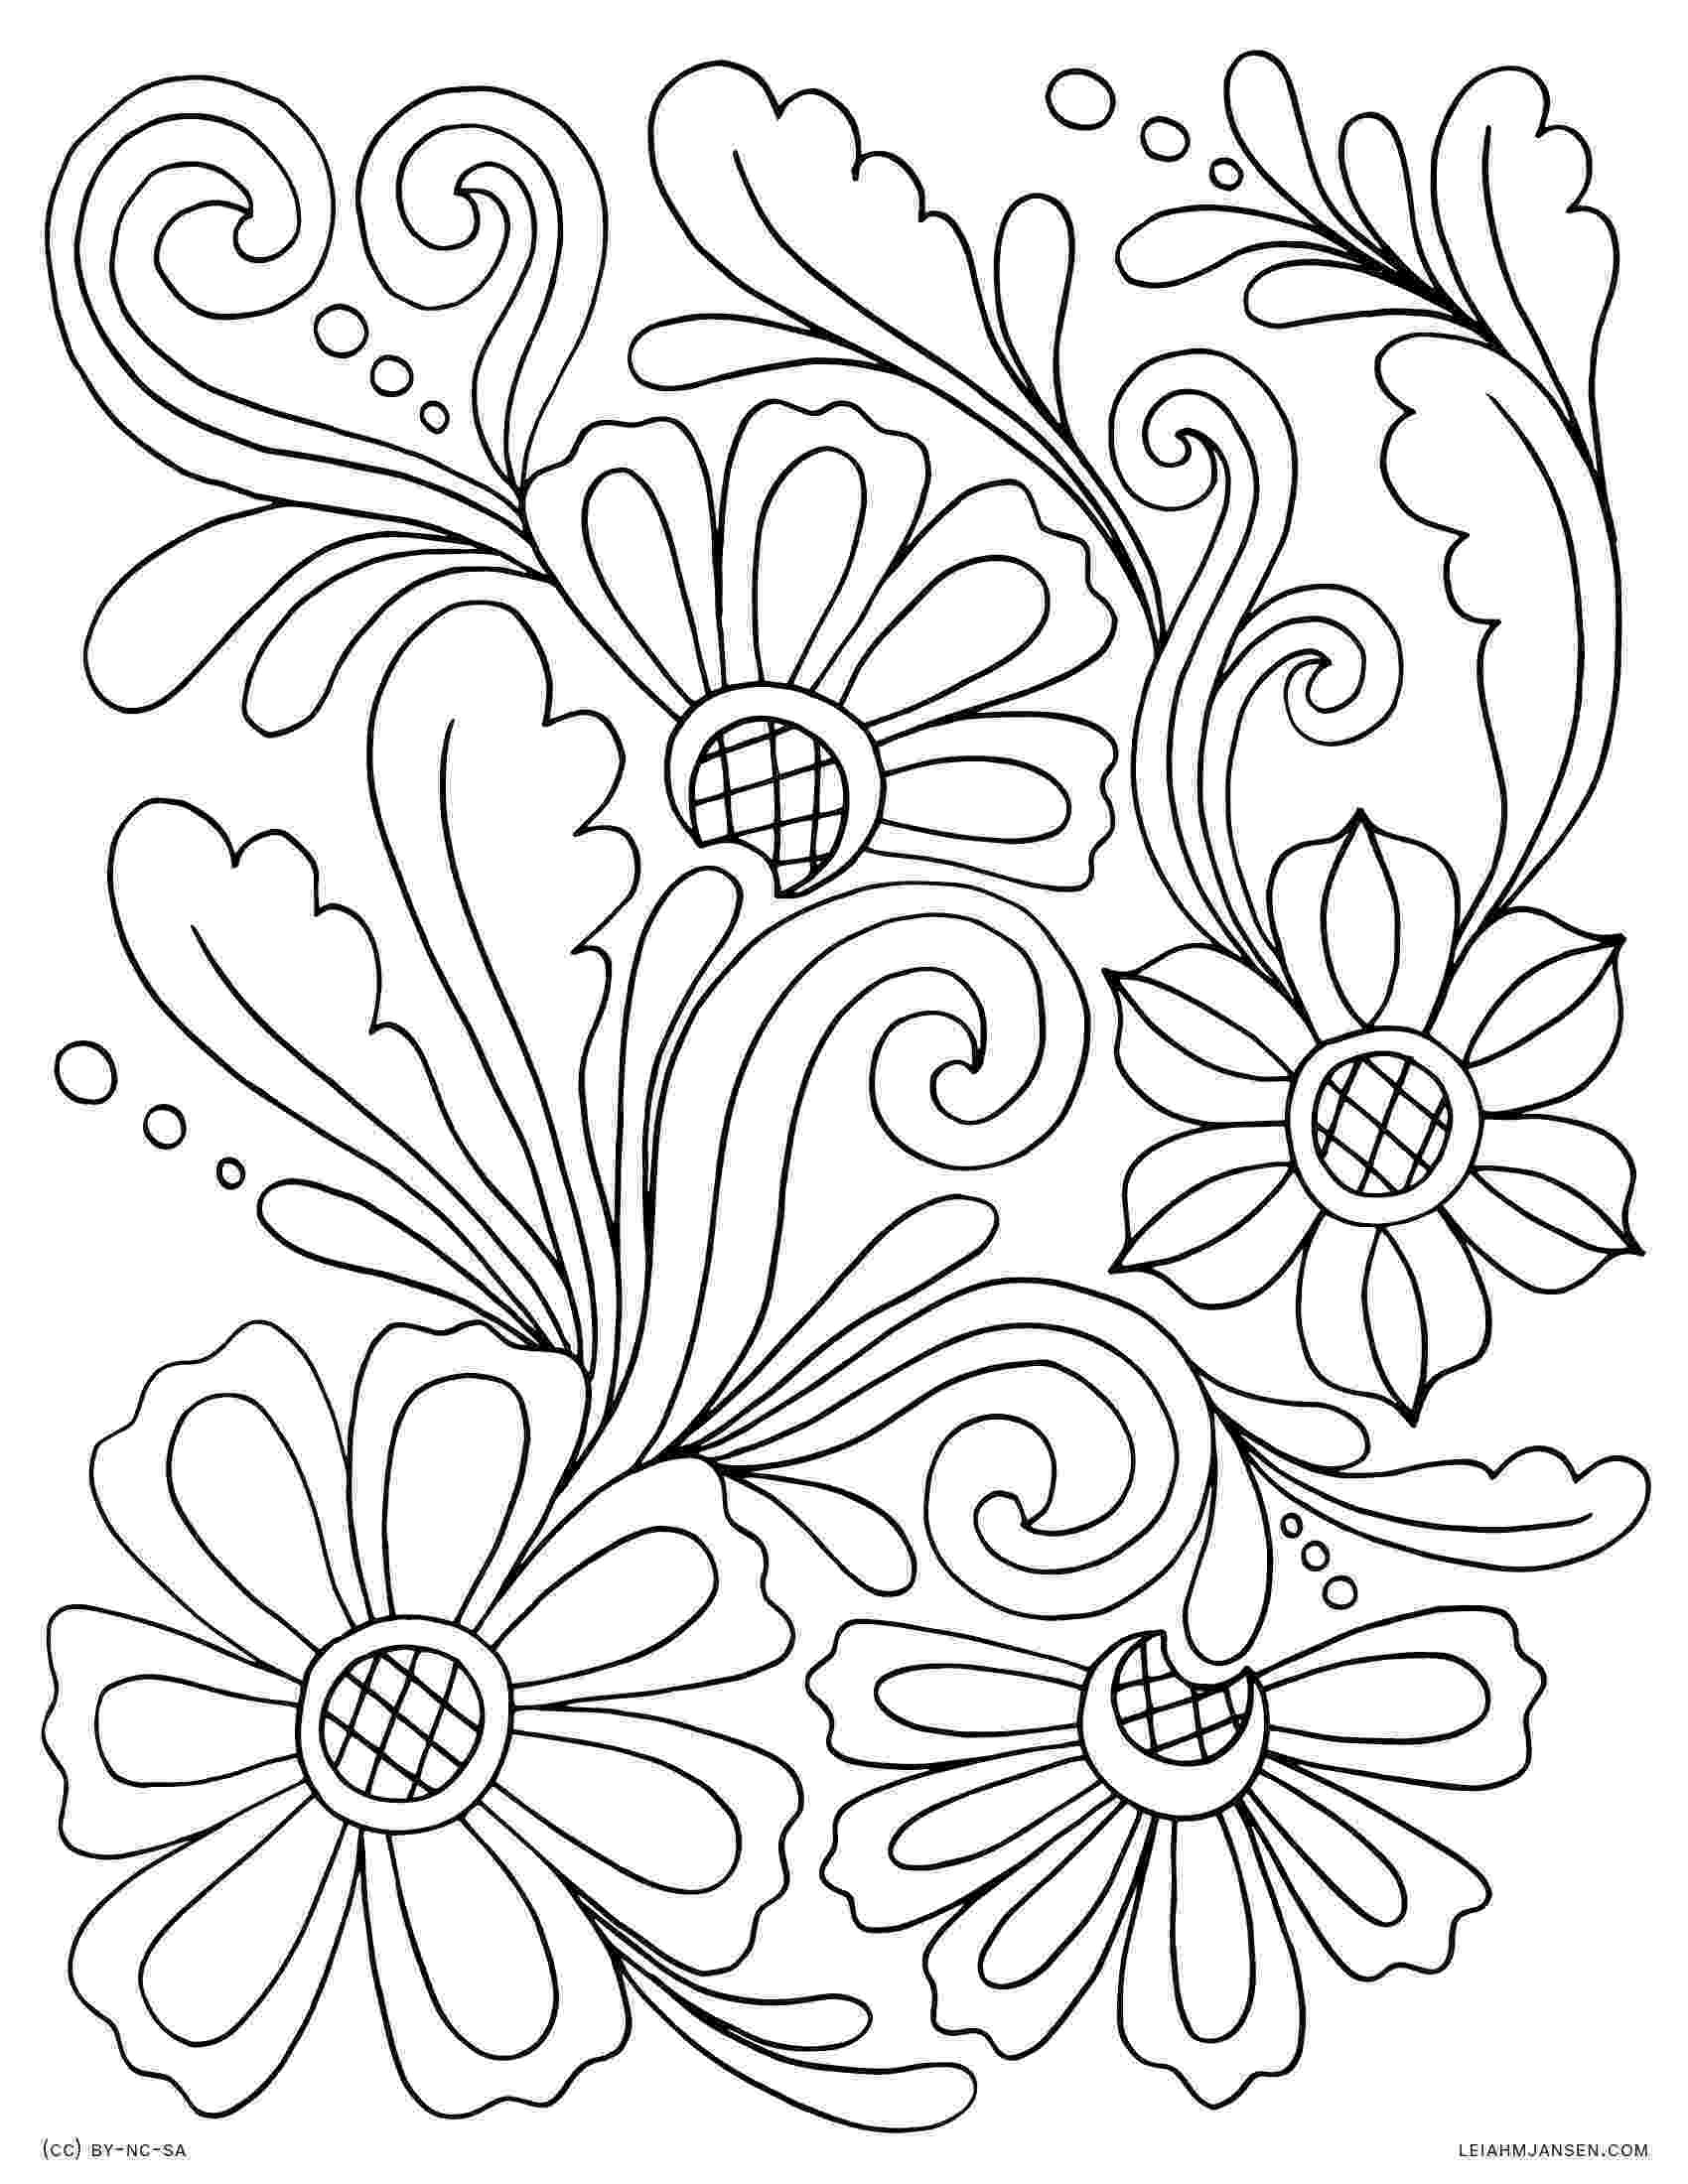 rosemaling coloring pages rosemaling colouring page pages coloring rosemaling